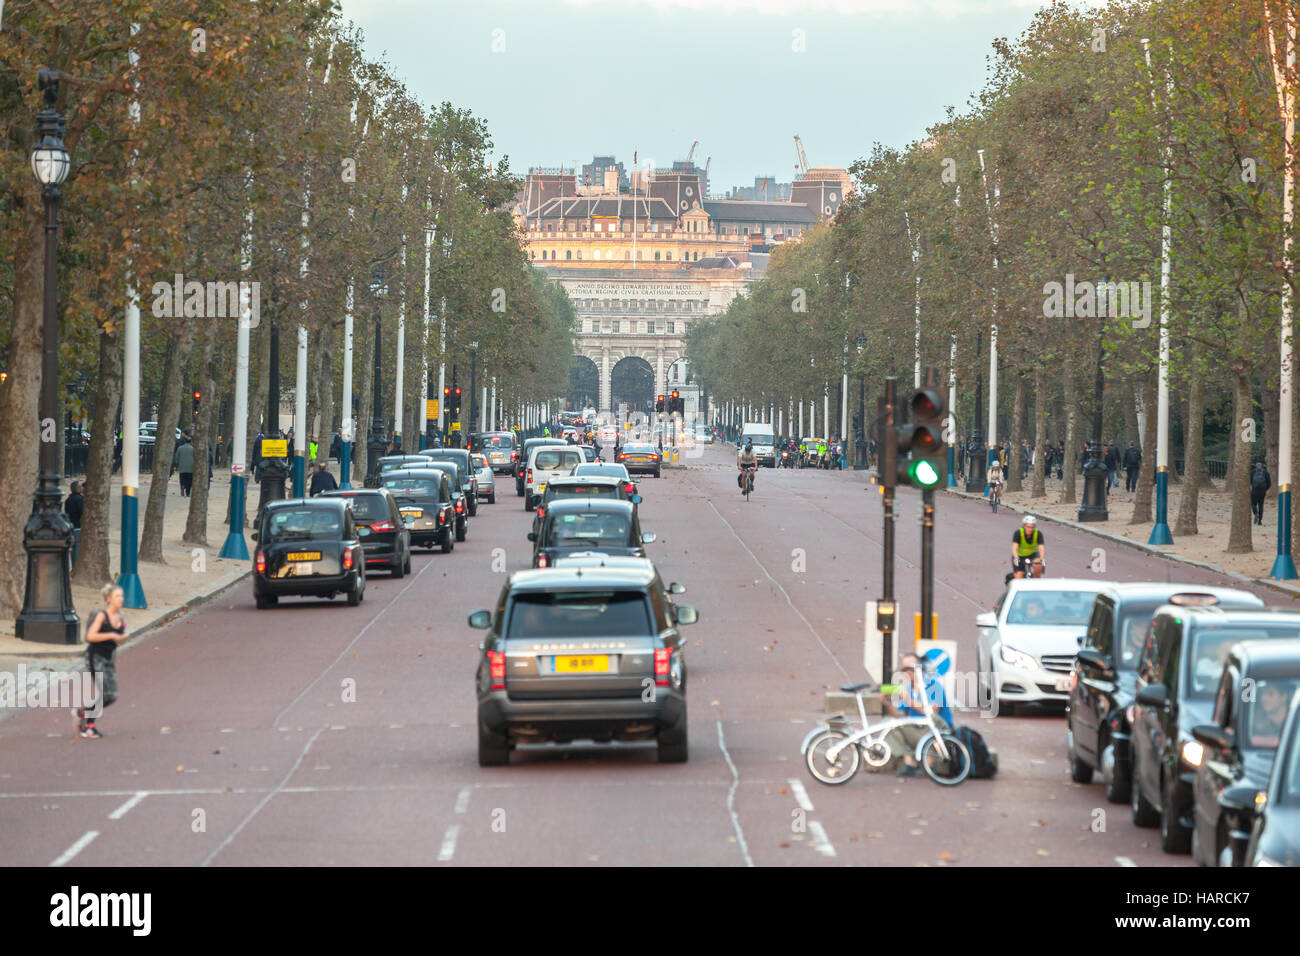 London the Mall road street - Stock Image